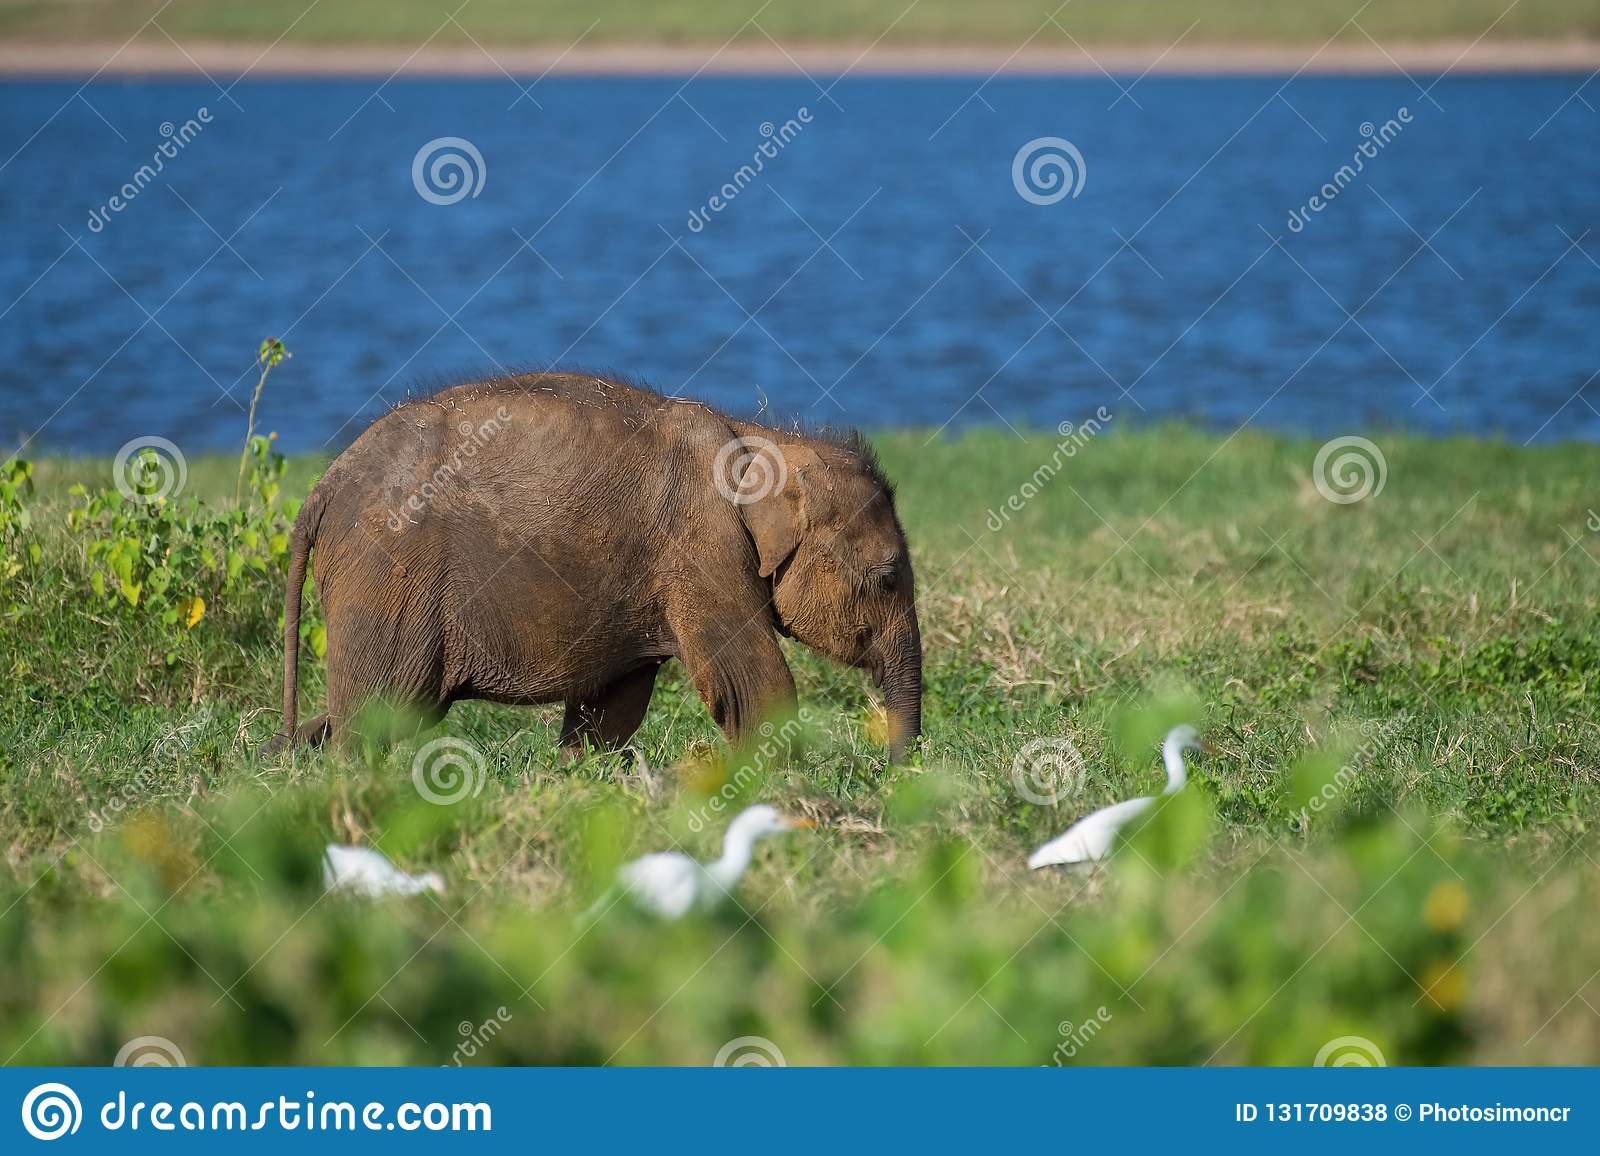 Young Sri Lankan Elephant, Elephas maximus maximus is walking in the typical habitat. It is eating the grass, in the background is